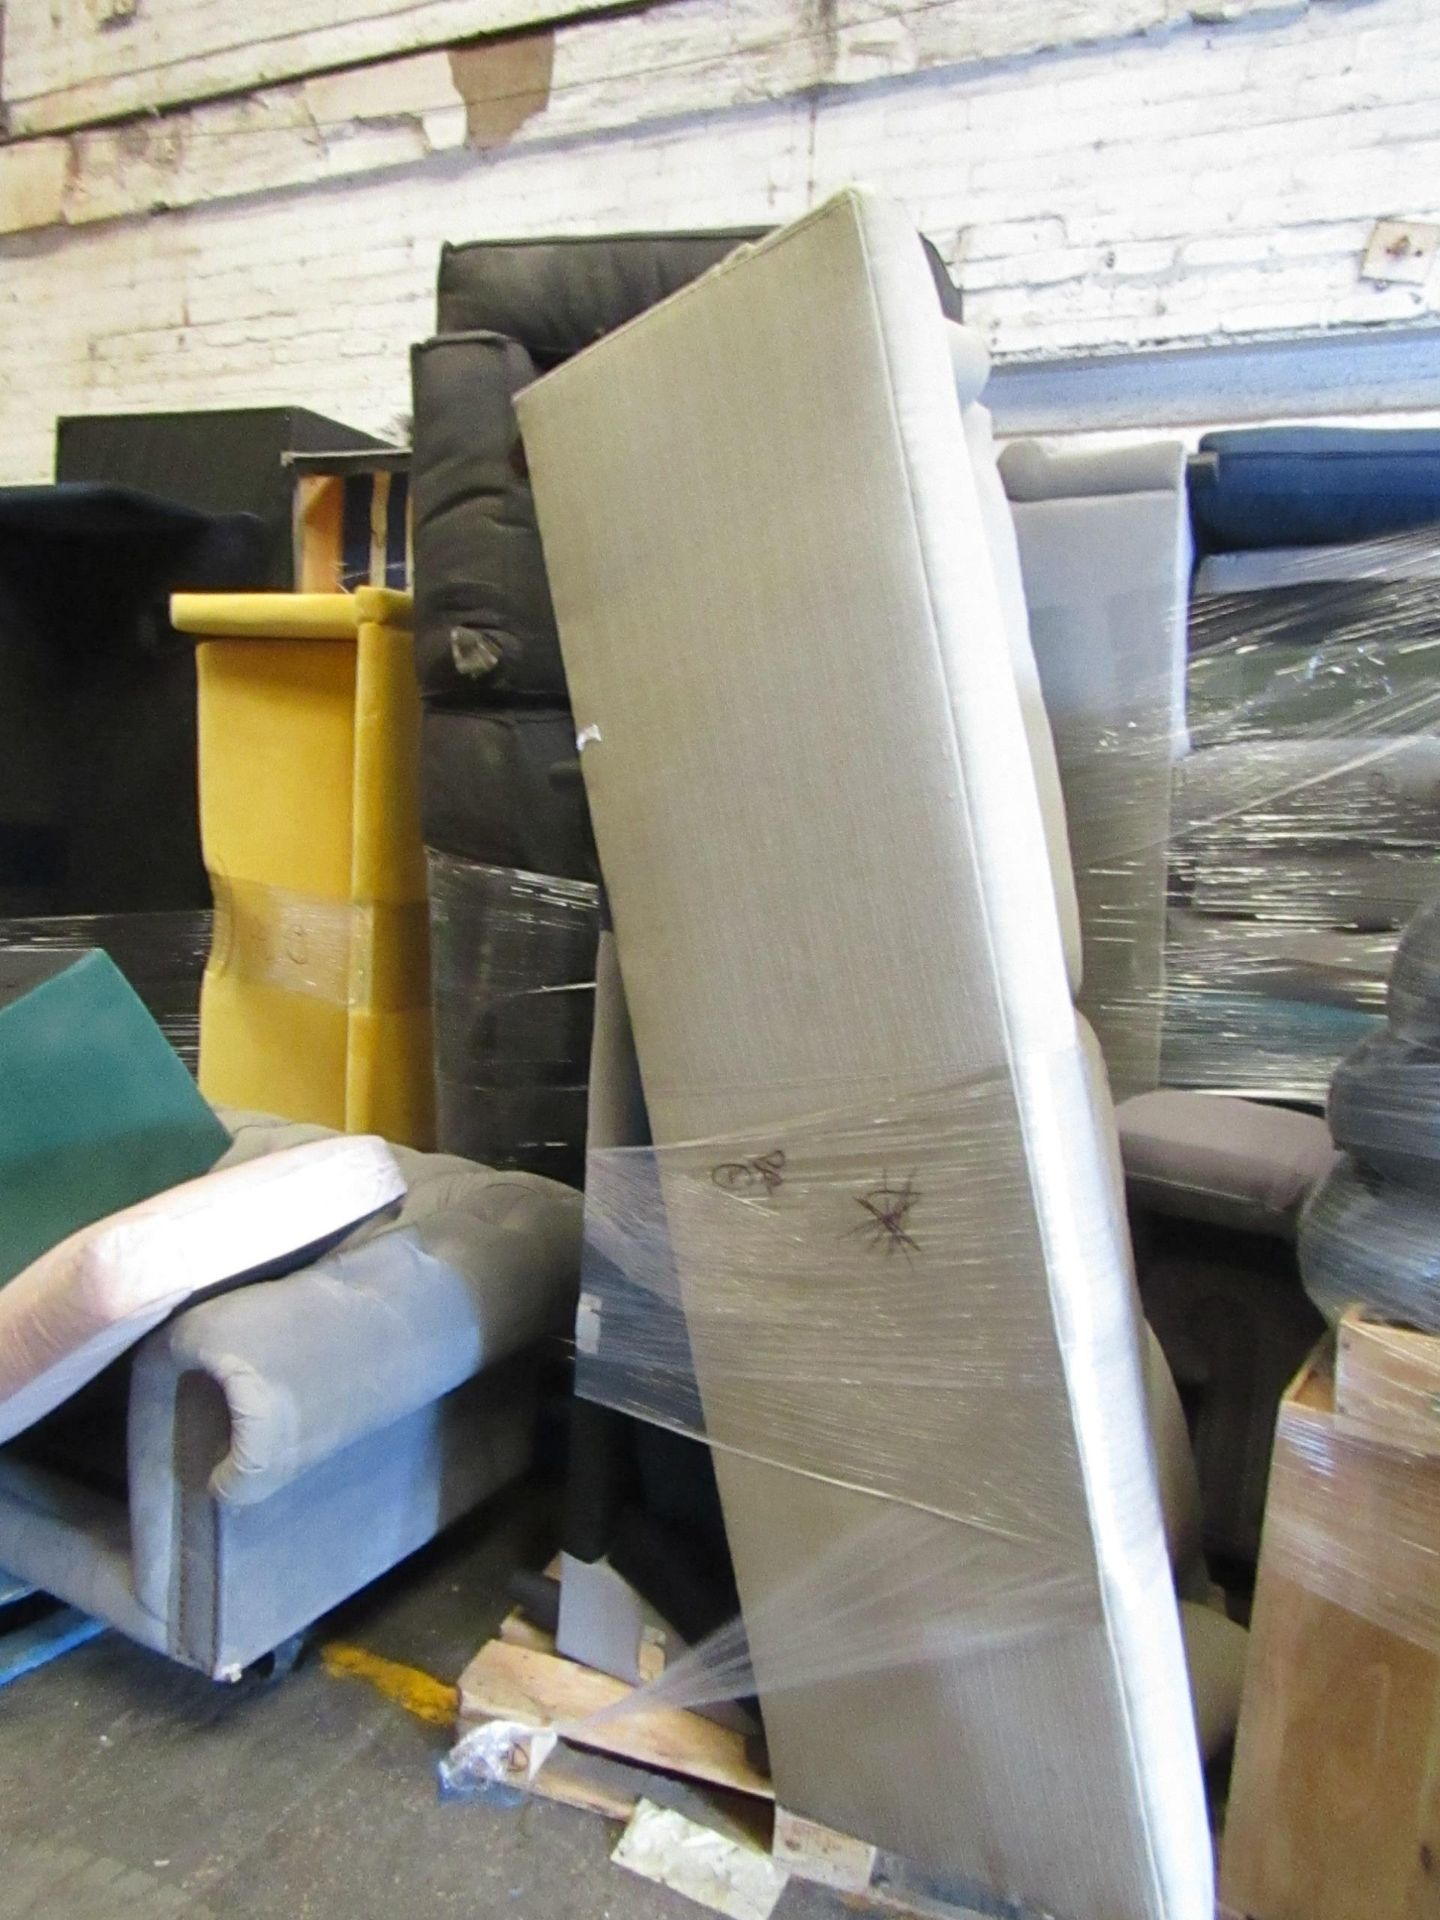 | 13X | PALLETS OF SWOON BER SOFAS, THESE ARE CUSTOMER RETURNS SO COULD HAVE MINOR DAMAGE, MAJOR - Image 6 of 11